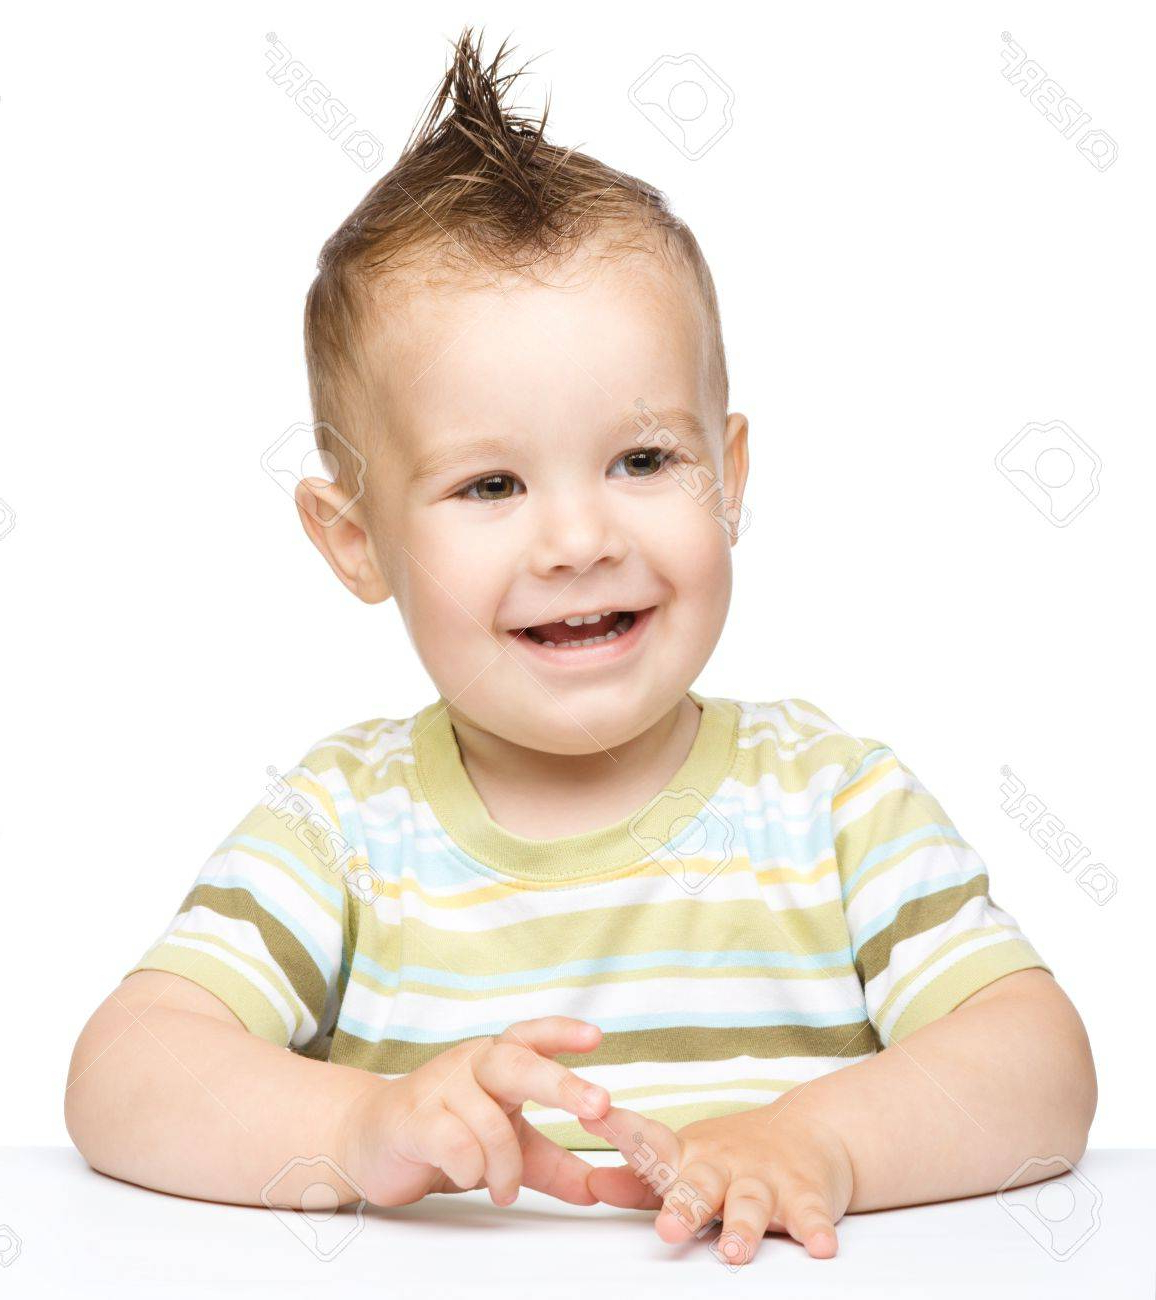 Portrait Of A Cute Cheerful Little Boy With Mohawk Hairstyle With Regard To Most Up To Date Innocent And Sweet Mohawk Hairstyles (View 19 of 20)